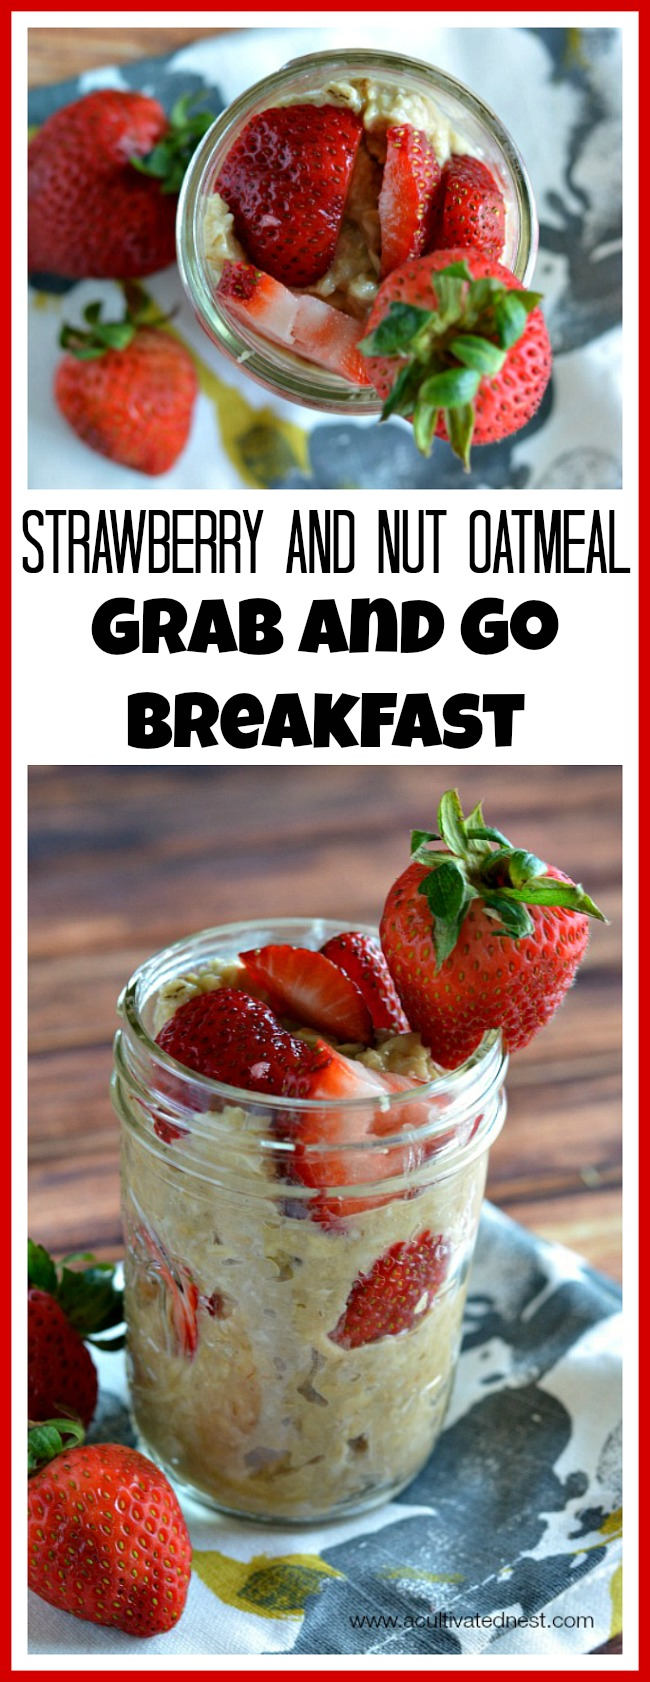 If you're usually busy in the morning, you should try a grab and go breakfast! A tasty and healthy one that I love is chilled strawberry and nut oatmeal!